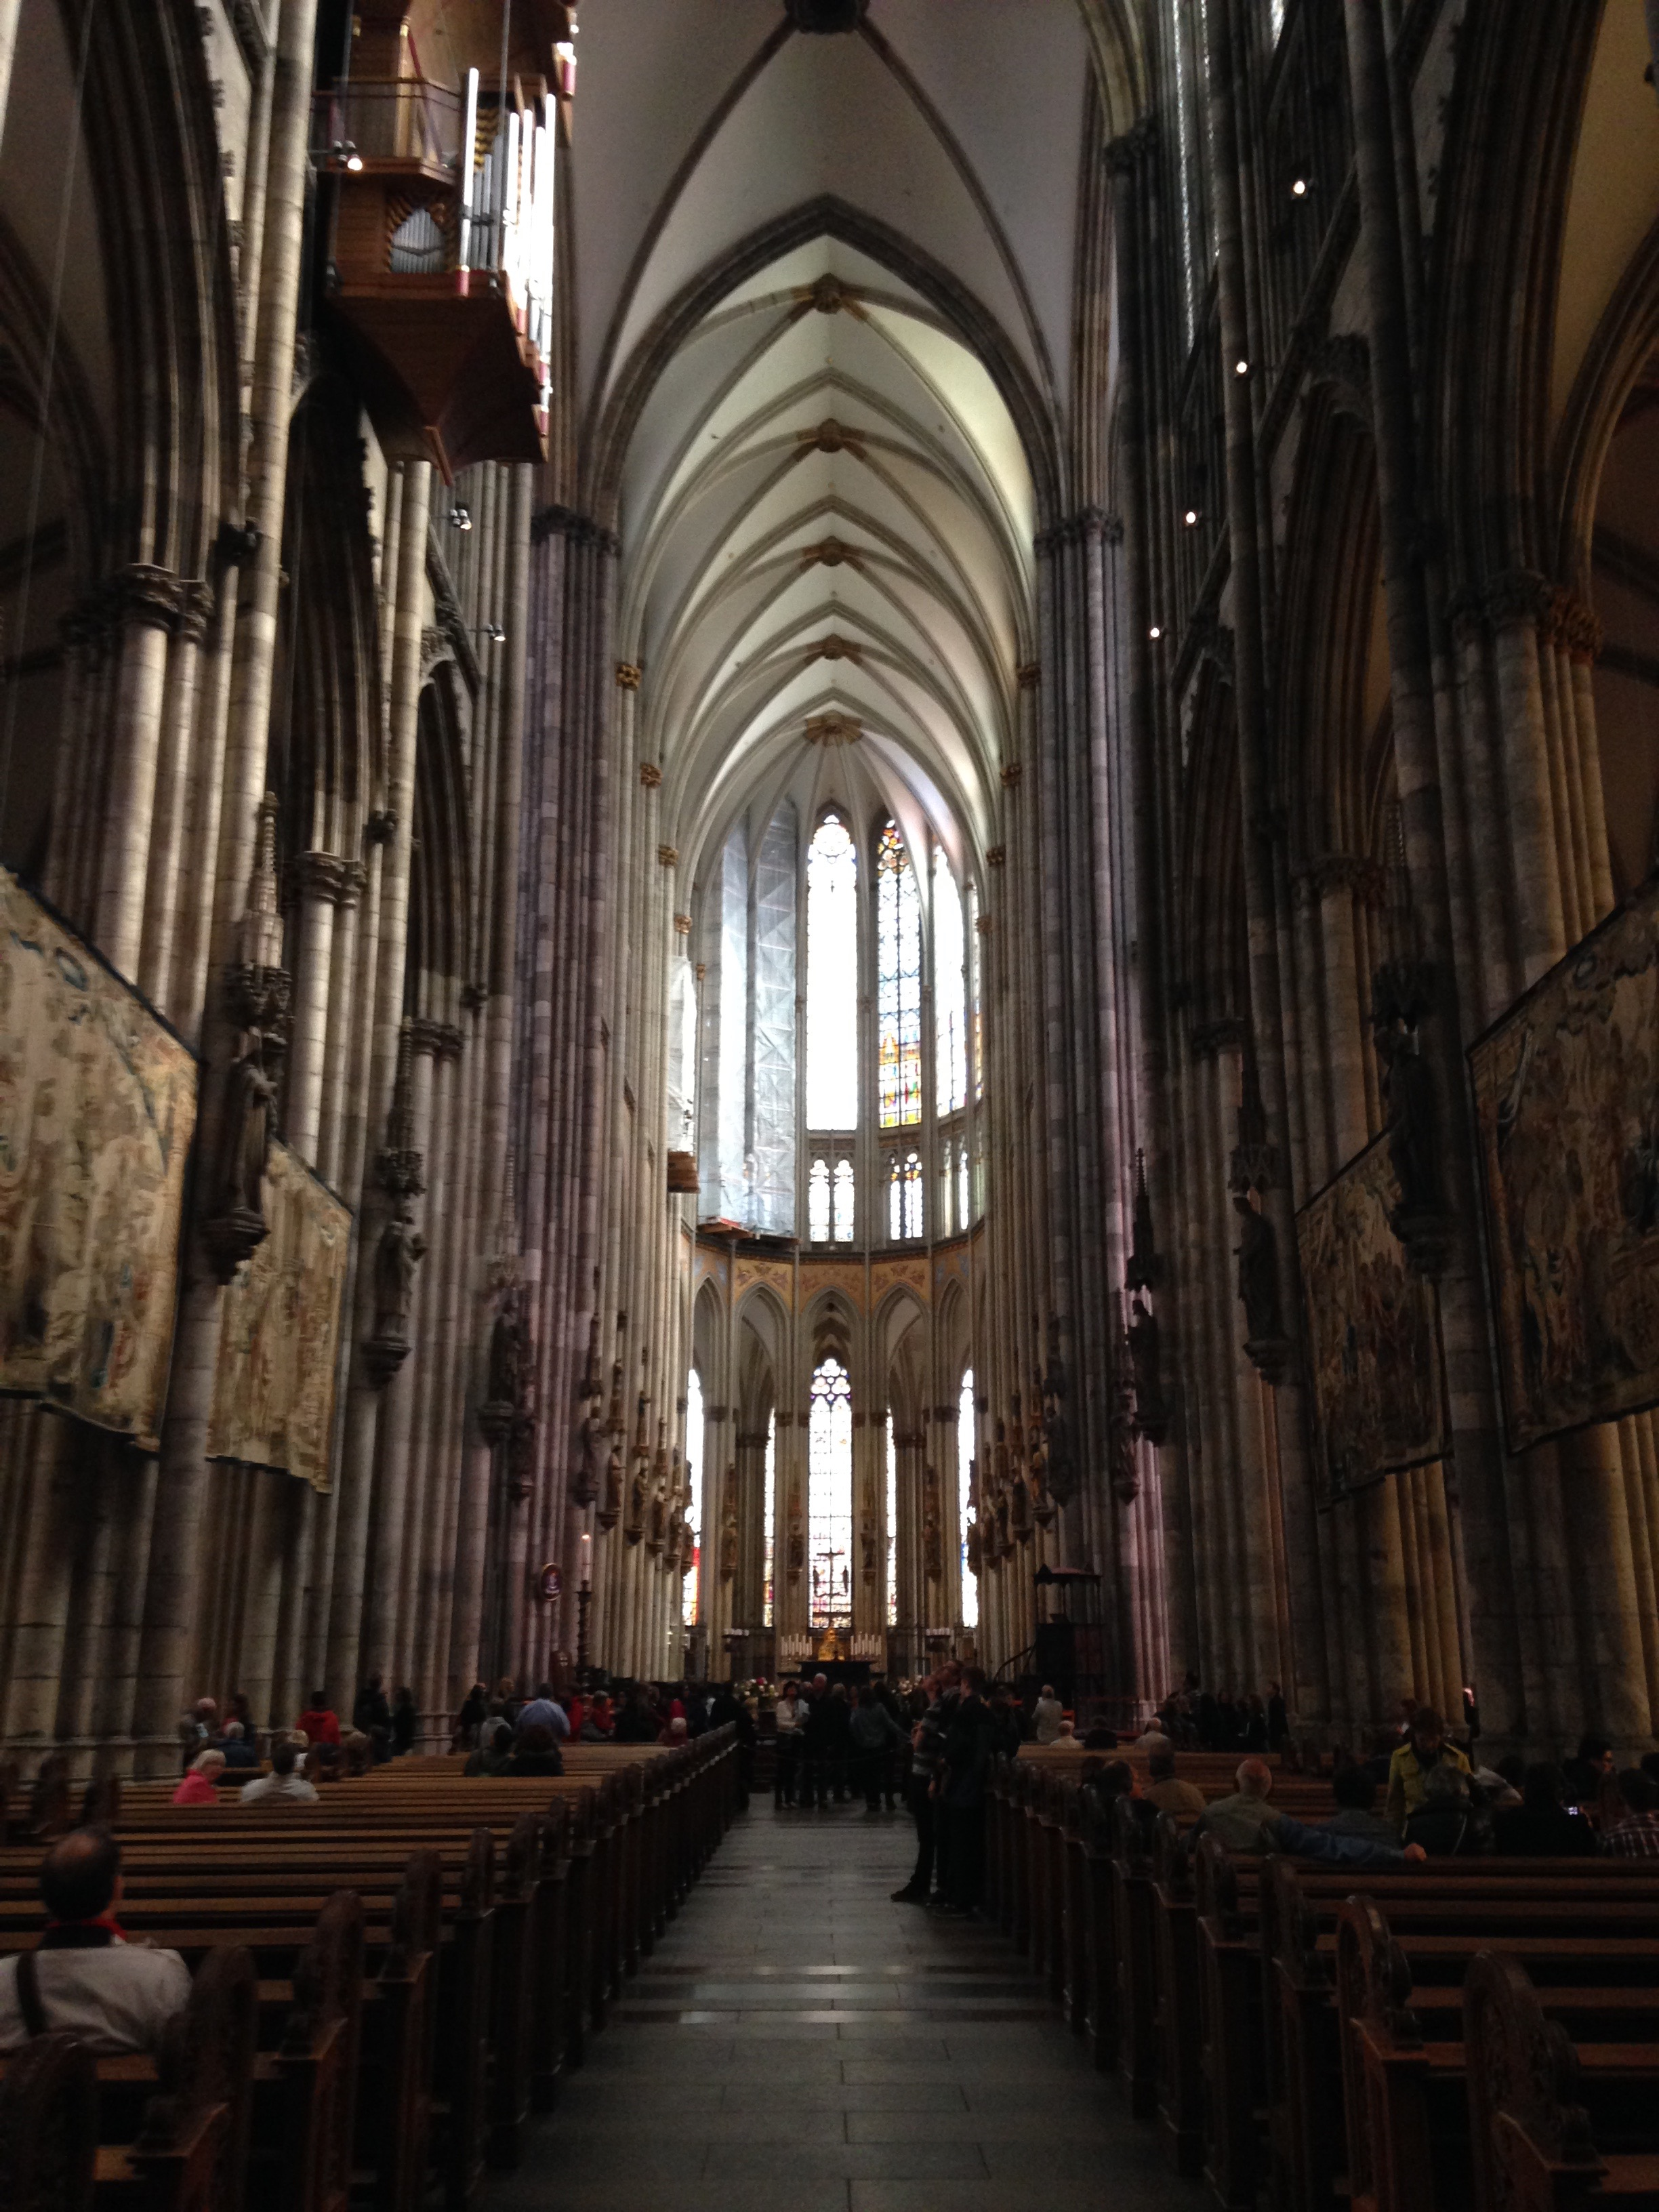 The nave of Cologne Cathedral